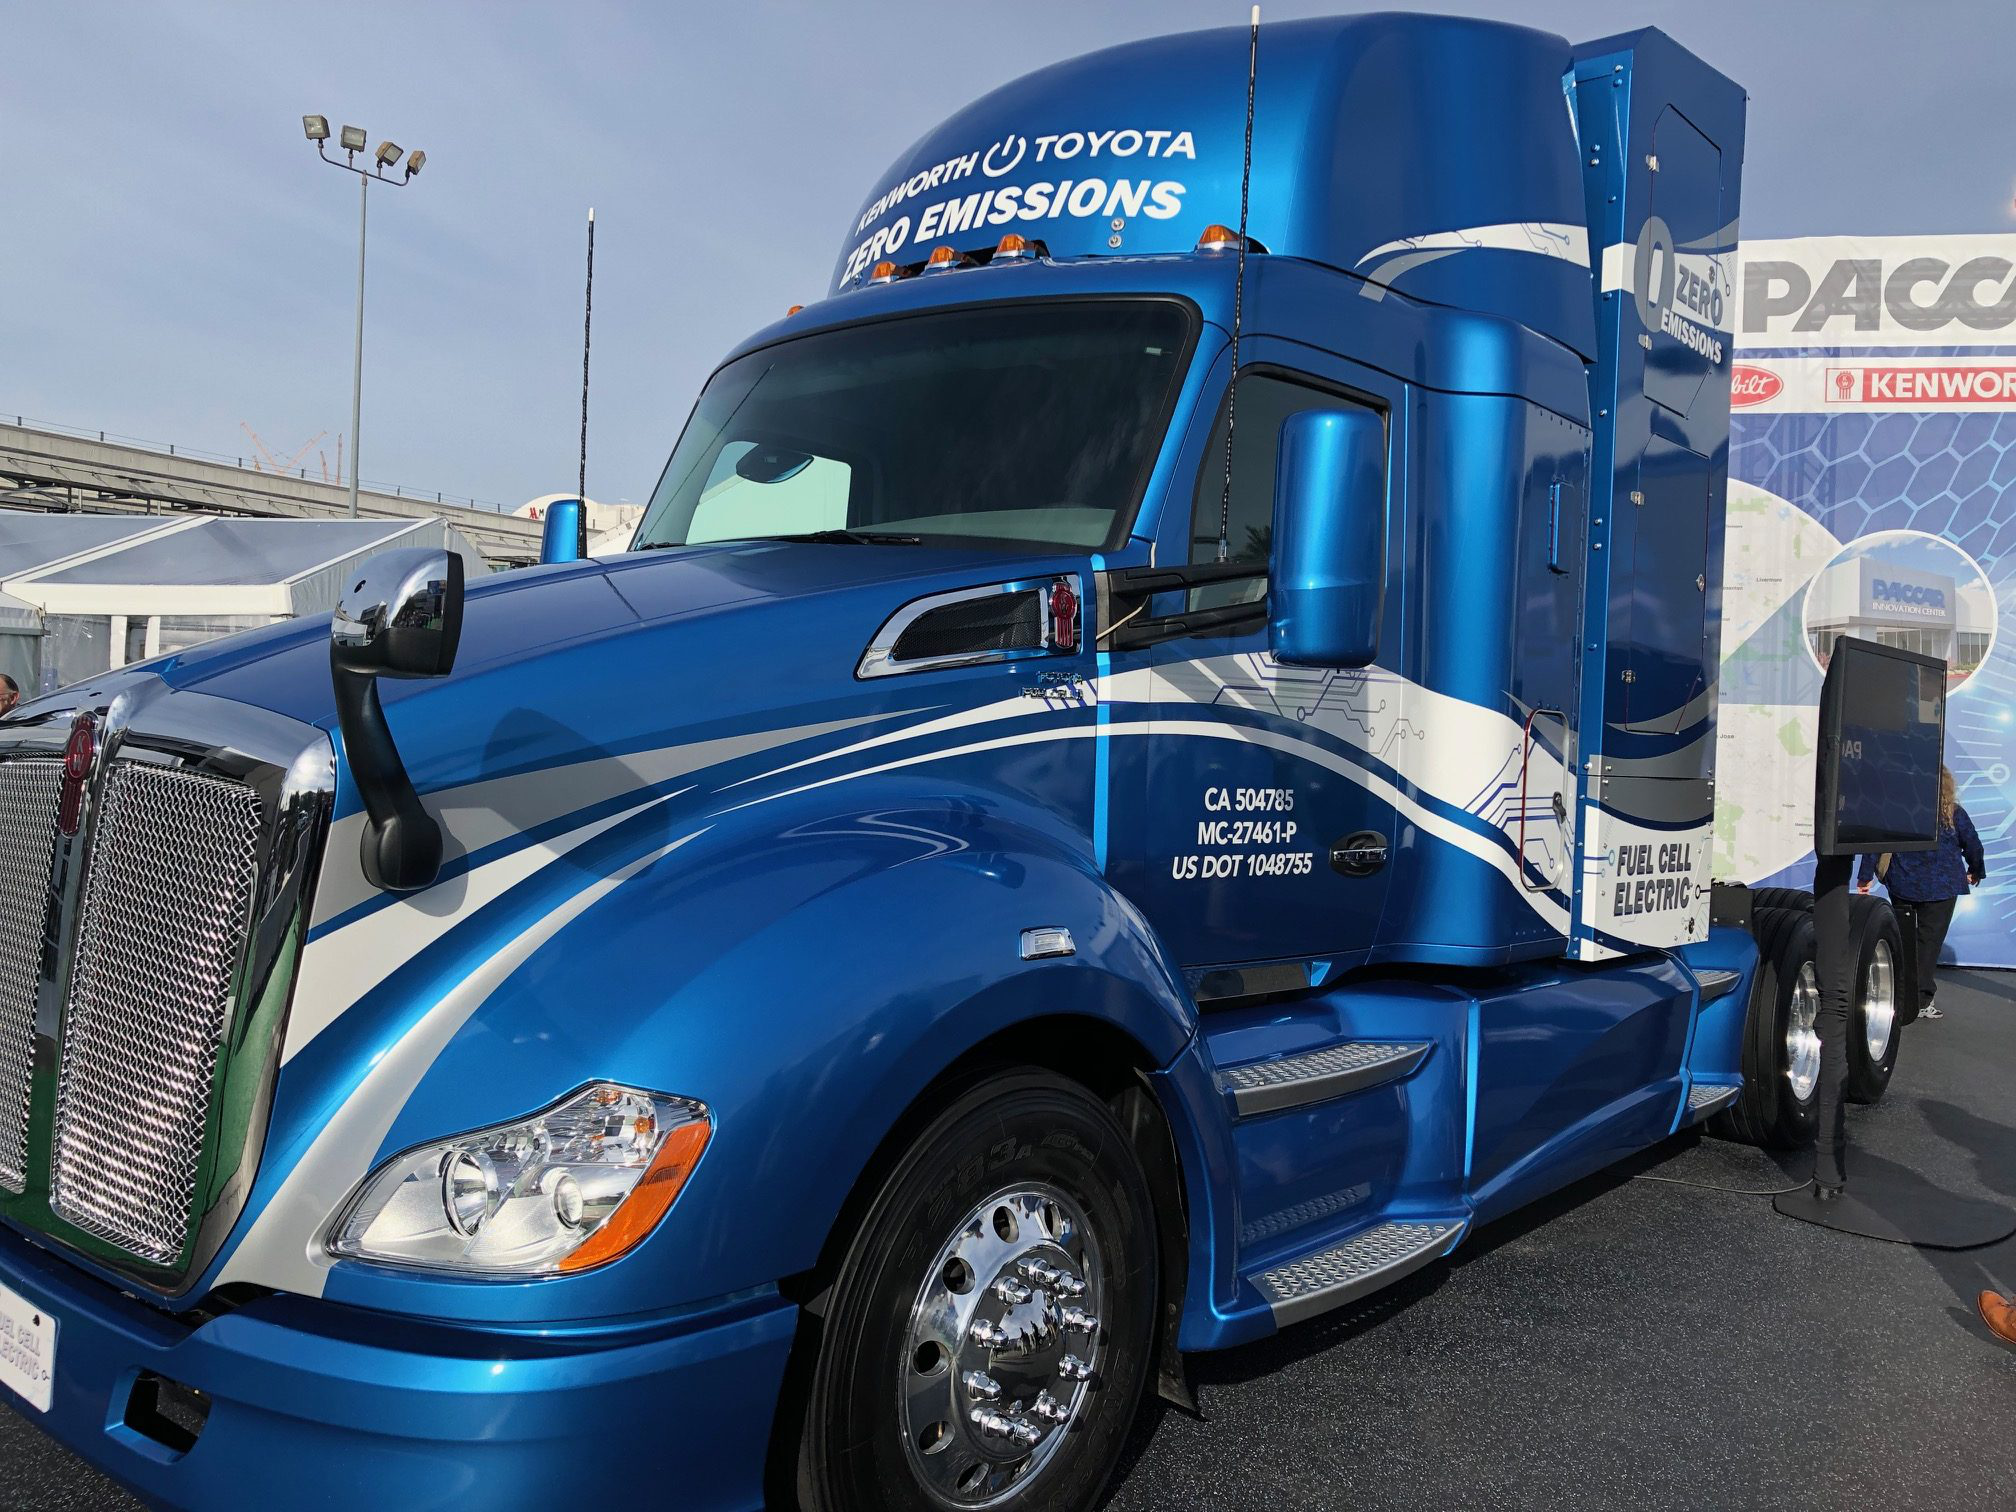 Kenworth T680 converted fuel cell electric power by Toyota